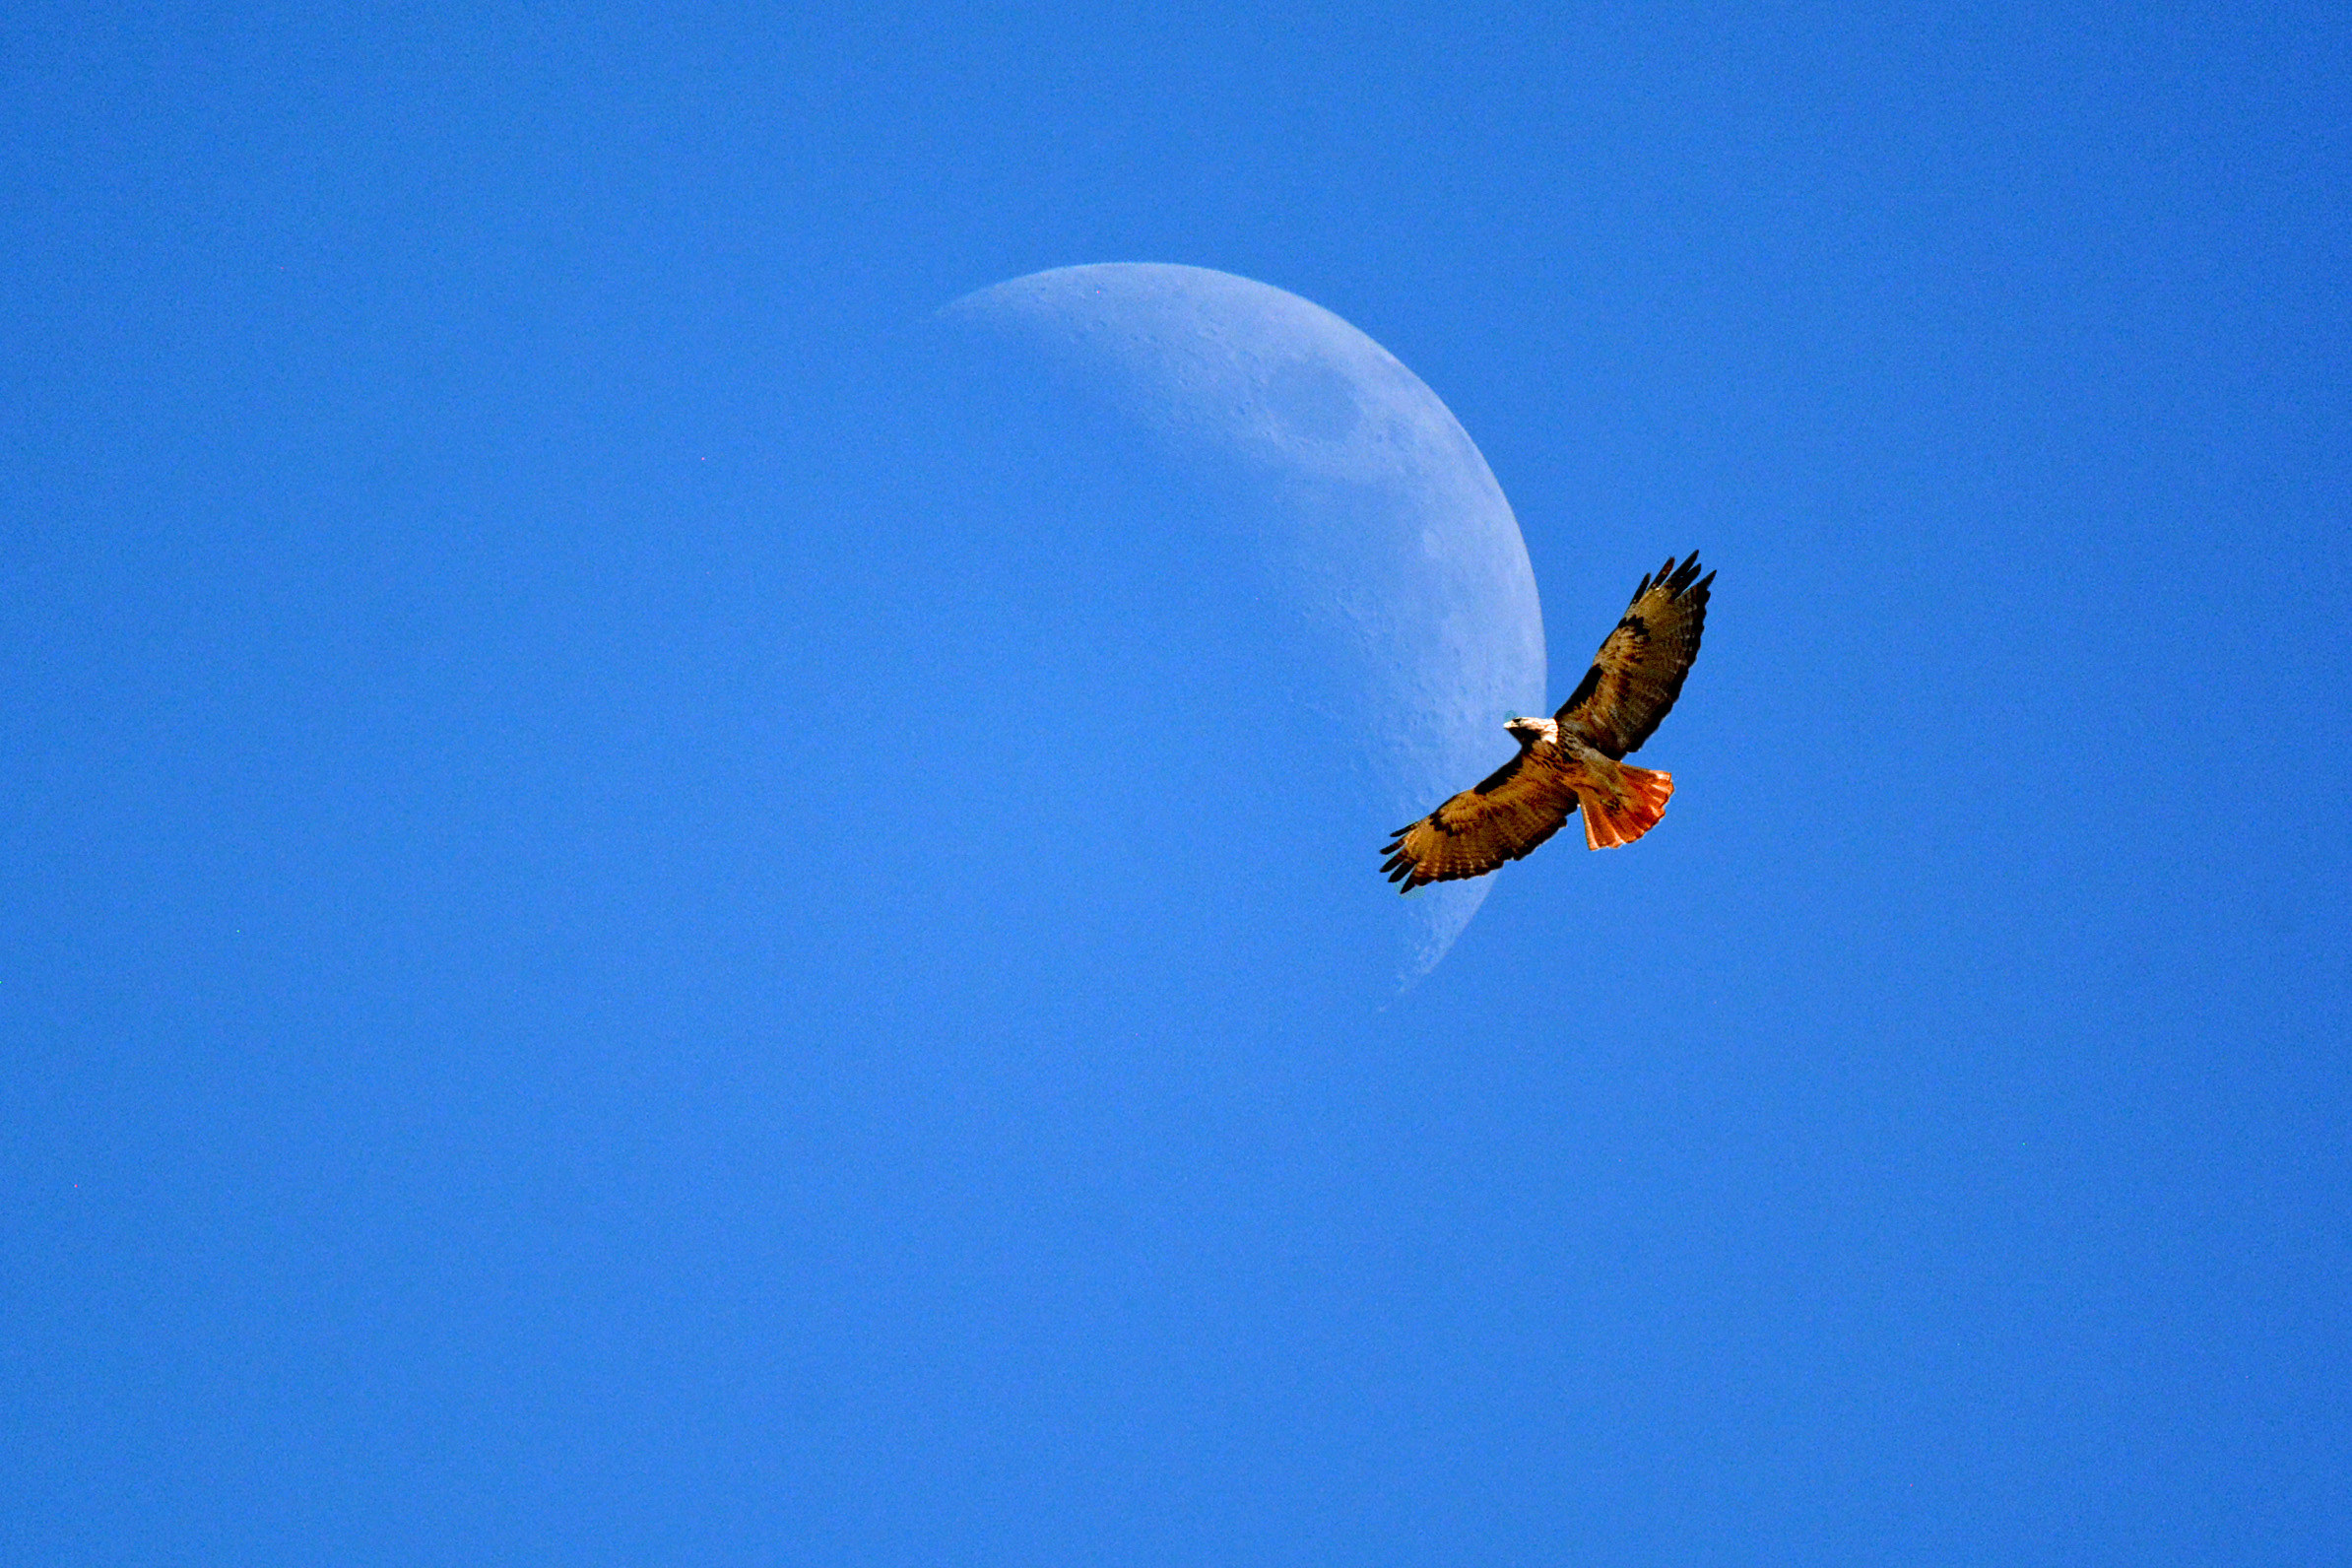 Moon_edited and Hawk